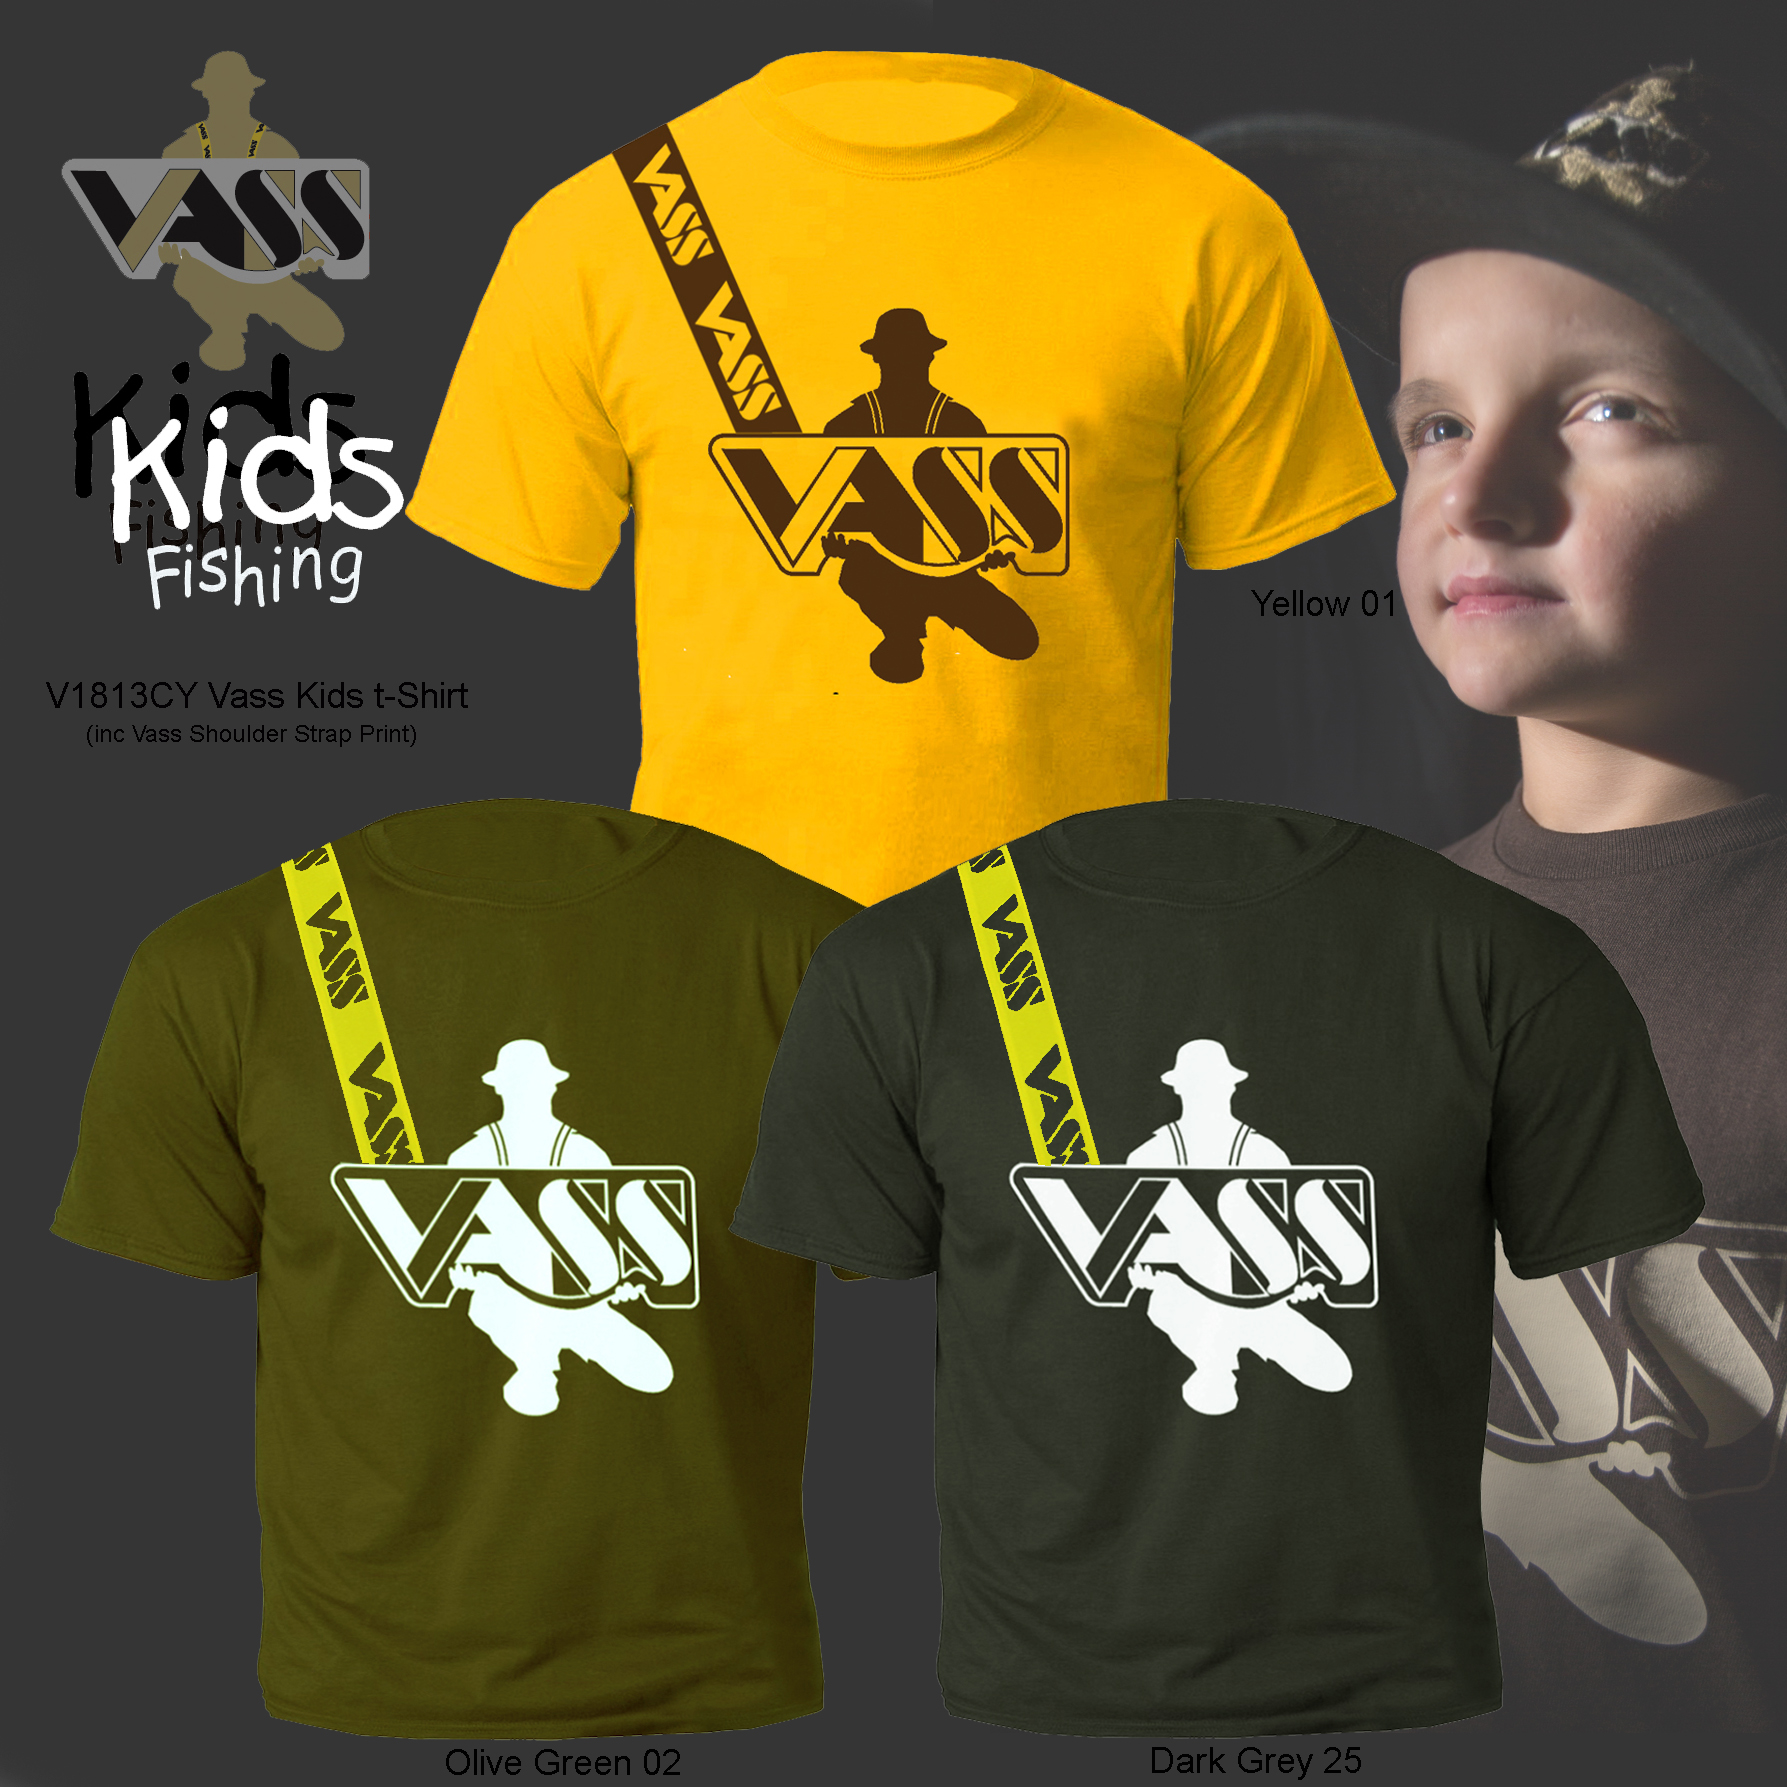 Vass Childrens Fishing T-Shirt inc Vass